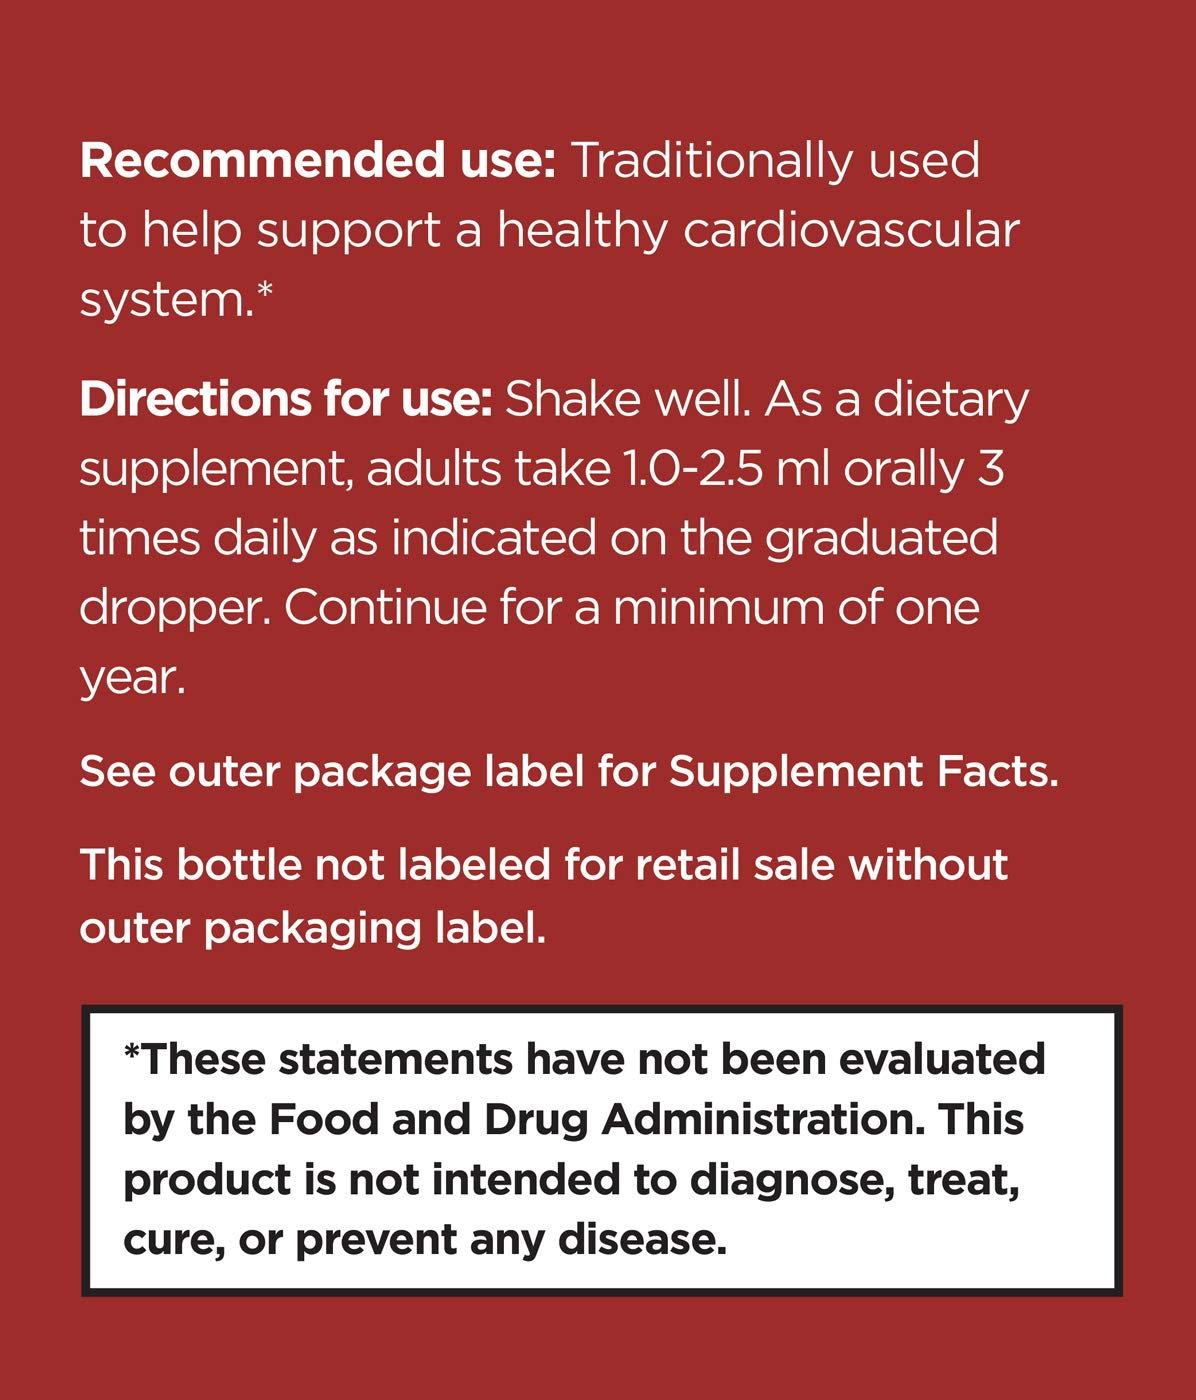 Strauss Heartdrops Aged Garlic Extract, Herbal Supplement for Heart Health- Herbal Formula Maintain a Healthy Cardiovascular System High Quality, Natural Ingredients 3.4 fl oz Cinnamon Flavor